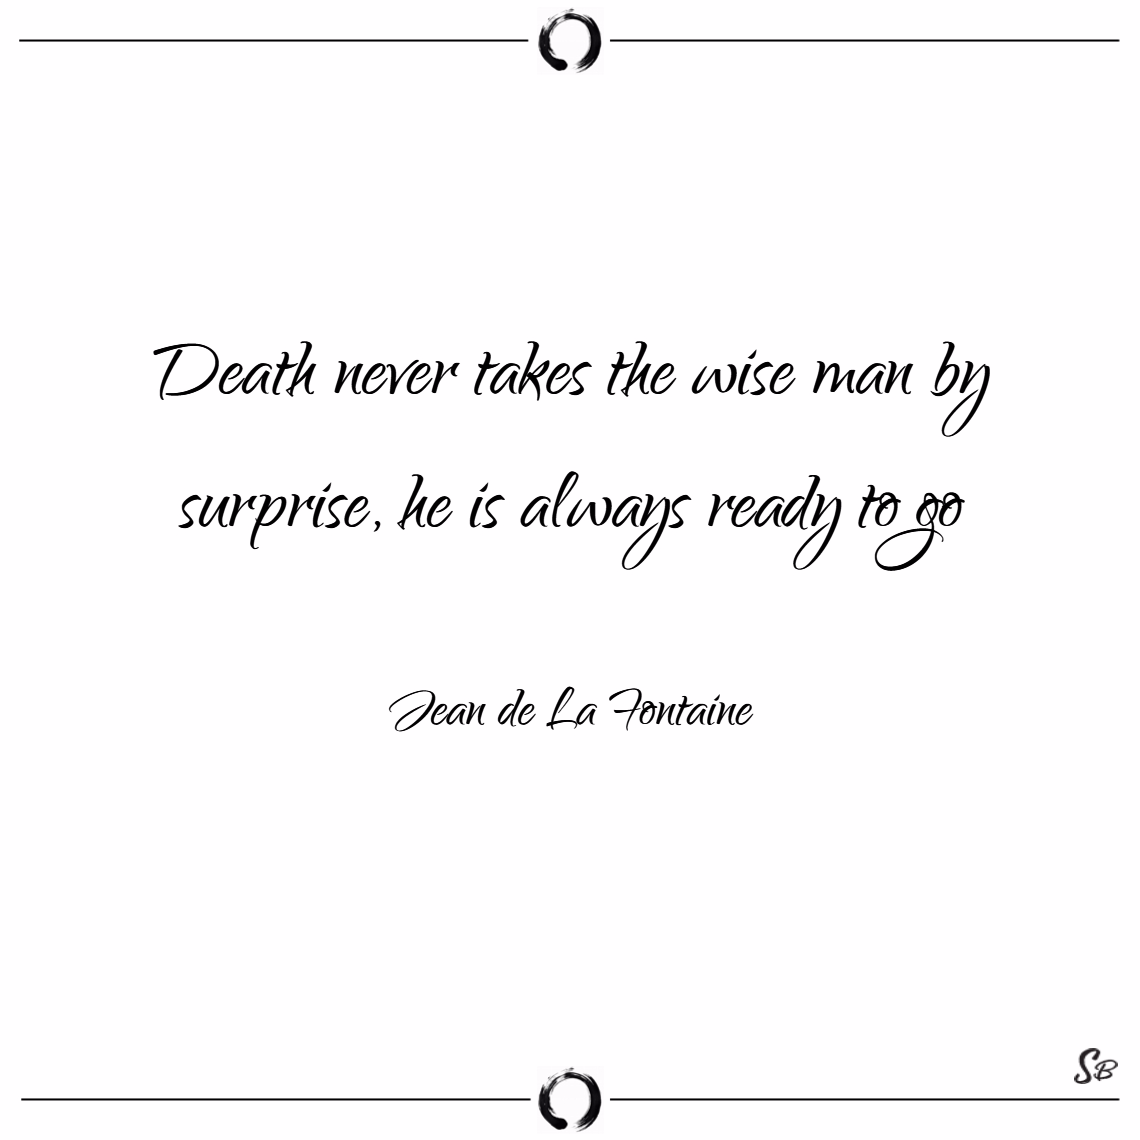 Death never takes the wise man by surprise, he is always ready to go. – jean de la fontaine death quotes